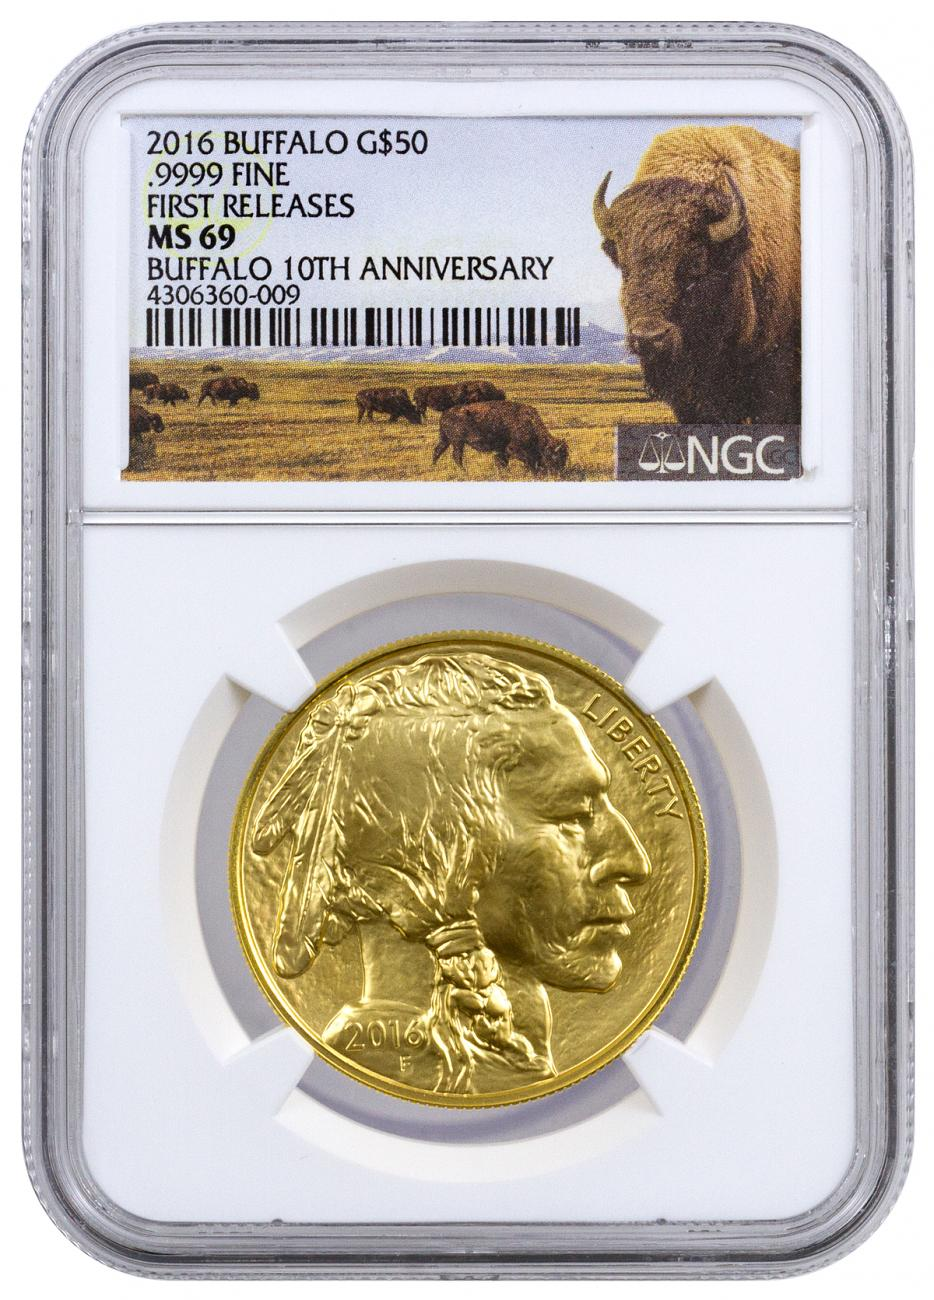 2016 $50 1 oz. Gold Buffalo - NGC MS69 First Releases (Buffalo Label)